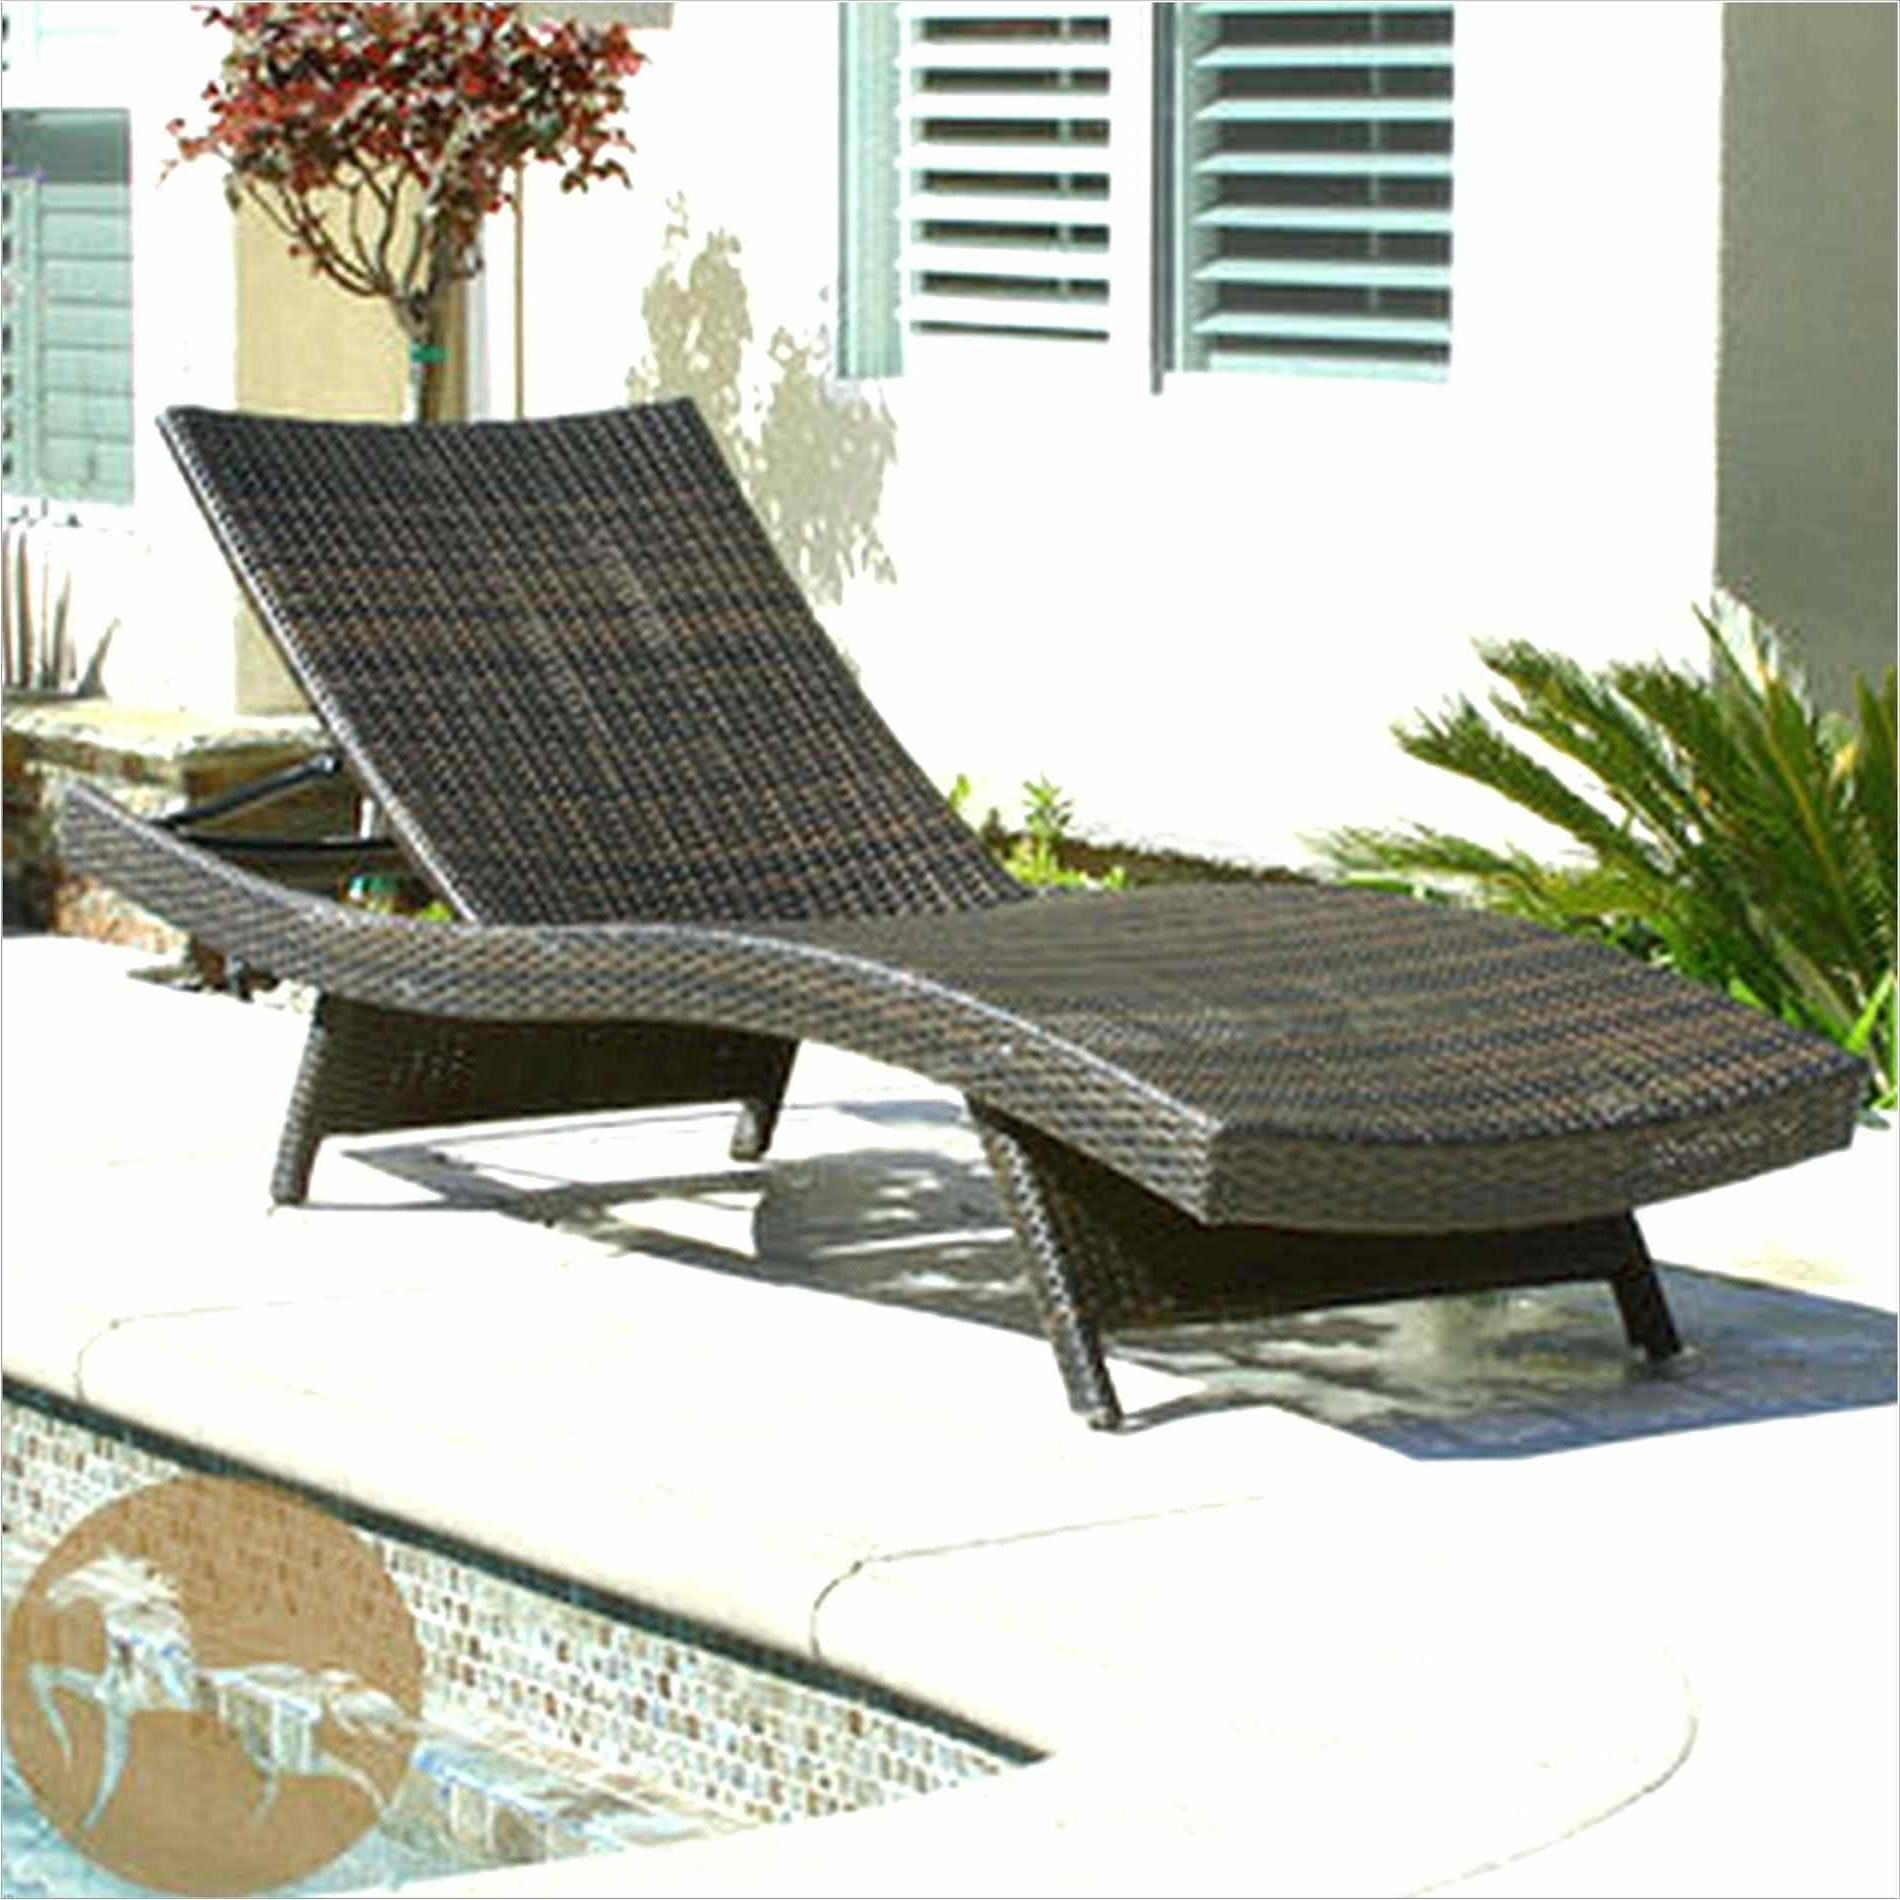 Lounge Chair : Chaise Lounge Chair Dimensions Lounge Chairs Pertaining To Fashionable Chaise Lounge Chairs In Toronto (View 11 of 15)